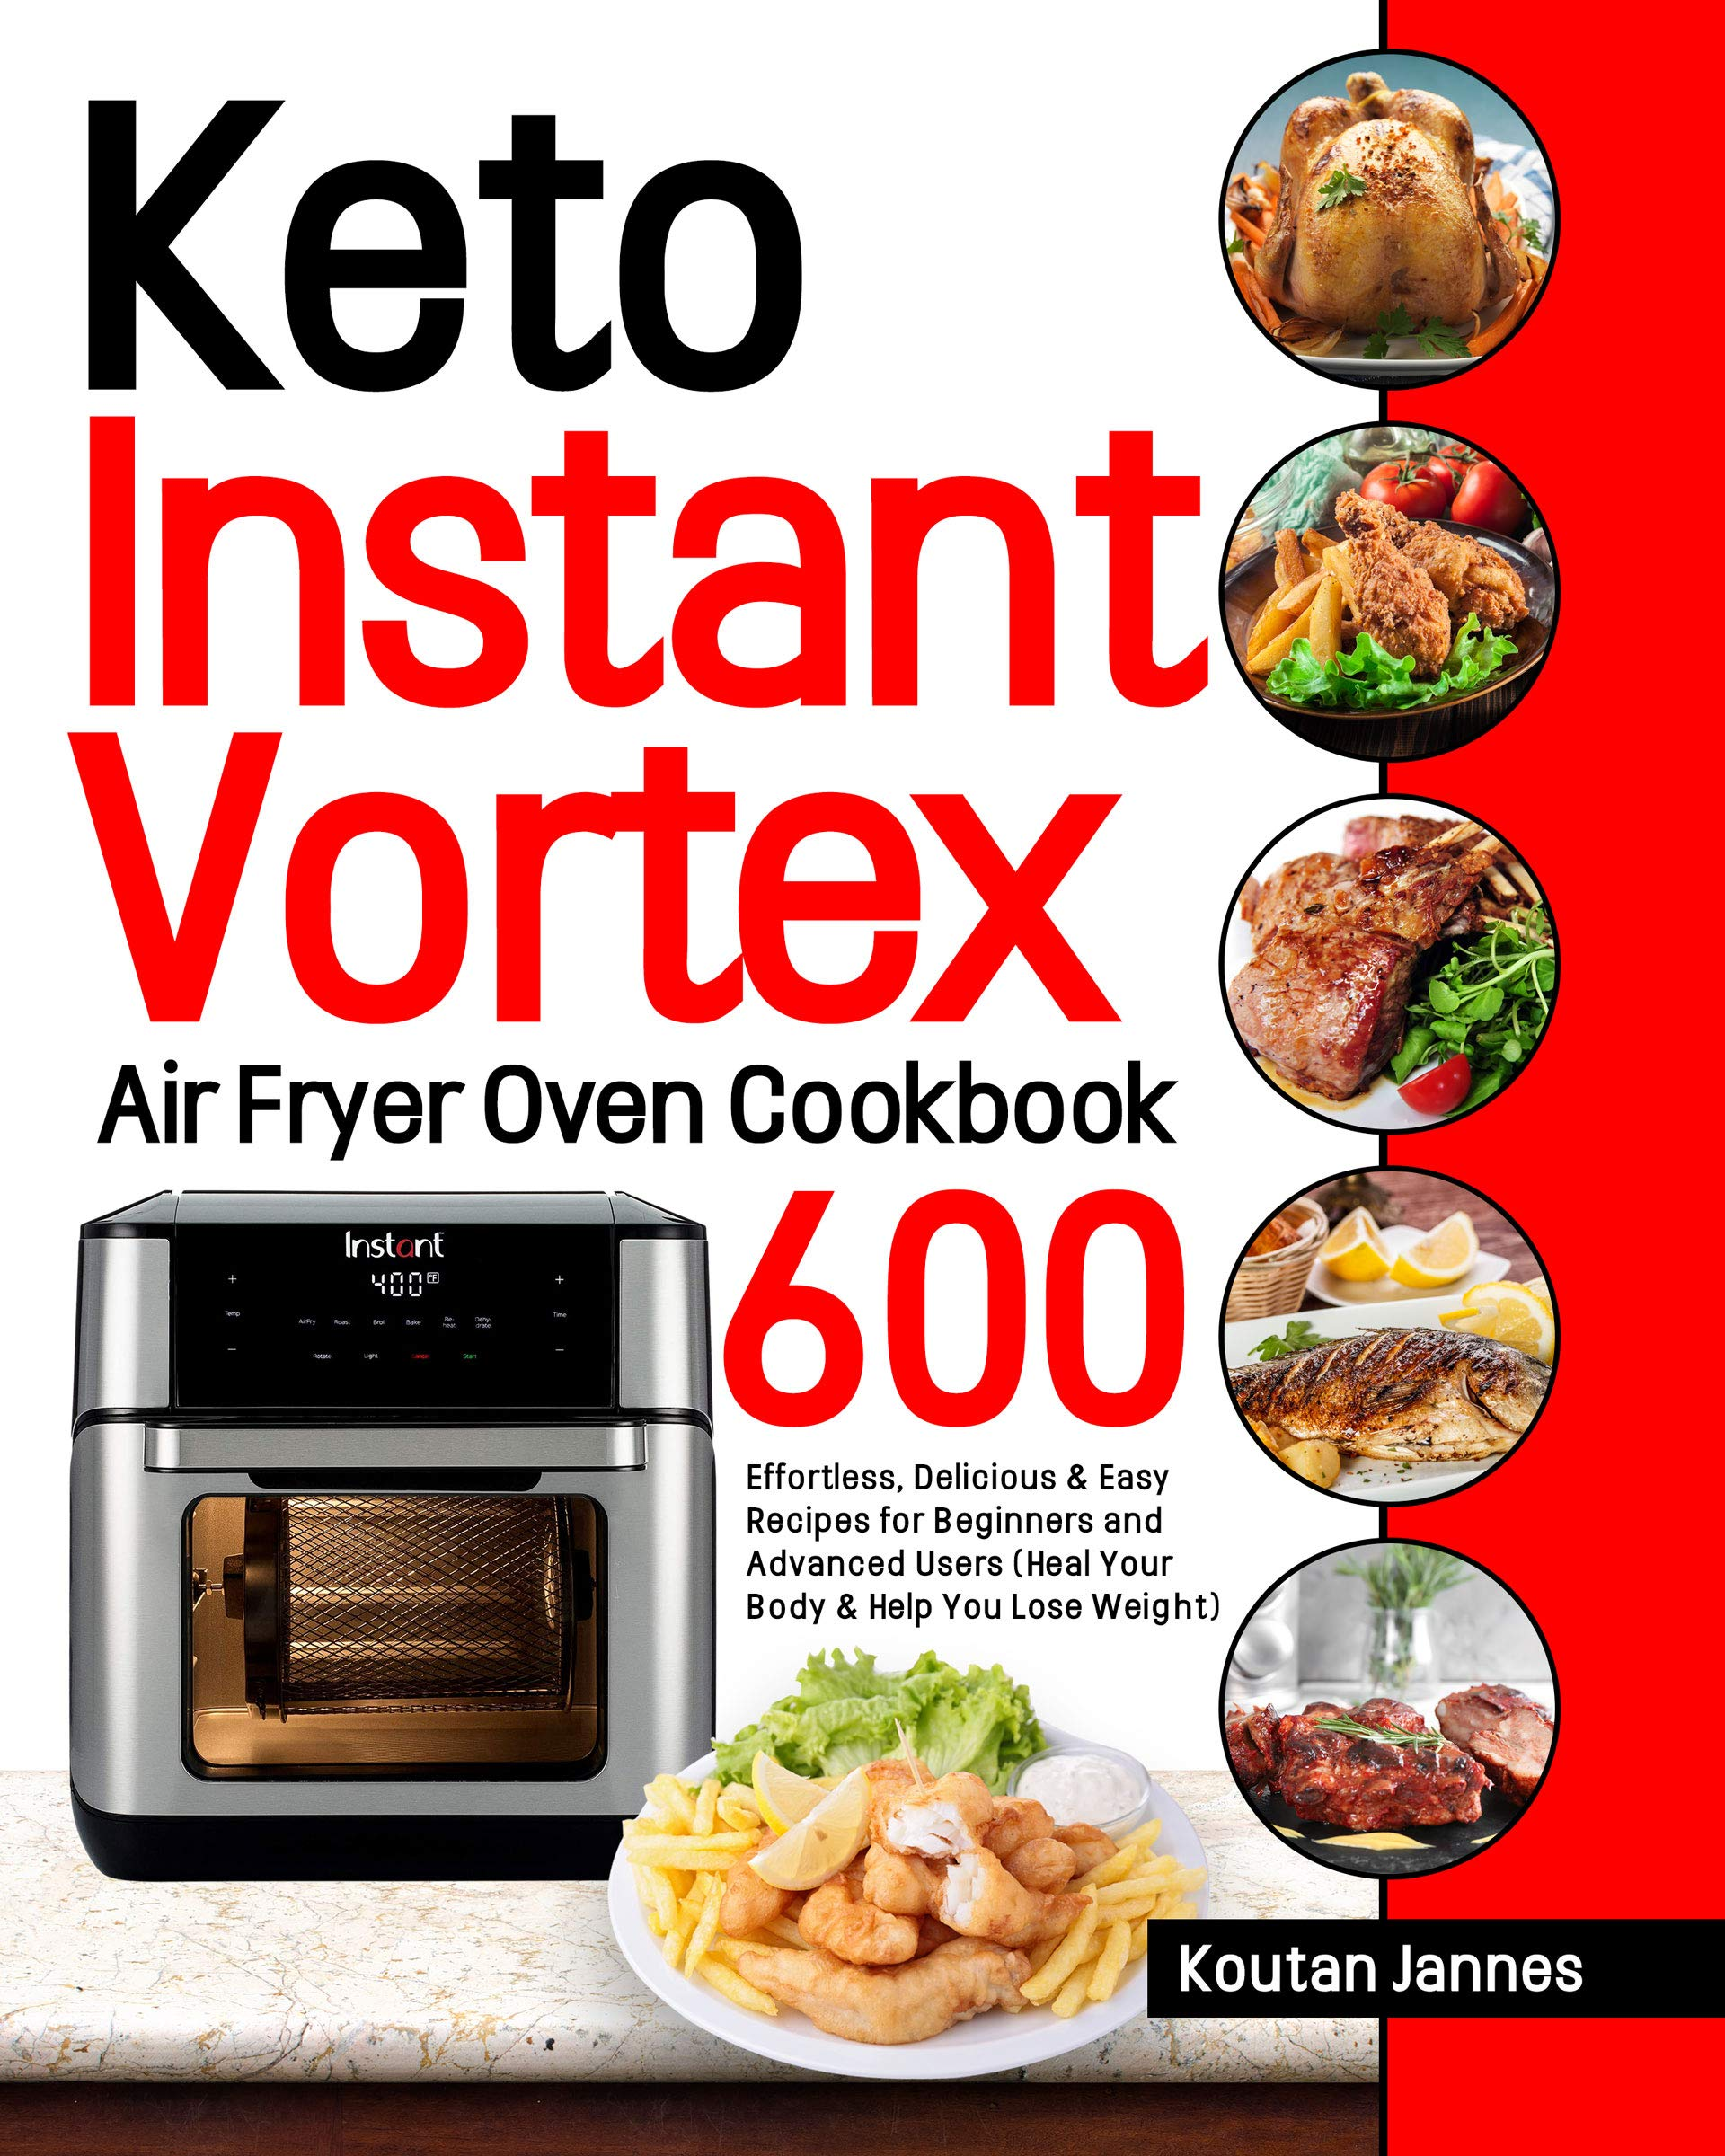 Keto Instant Vortex Air Fryer Oven Cookbook: 600 Effortless, Delicious & Easy Recipes for Beginners and Advanced Users